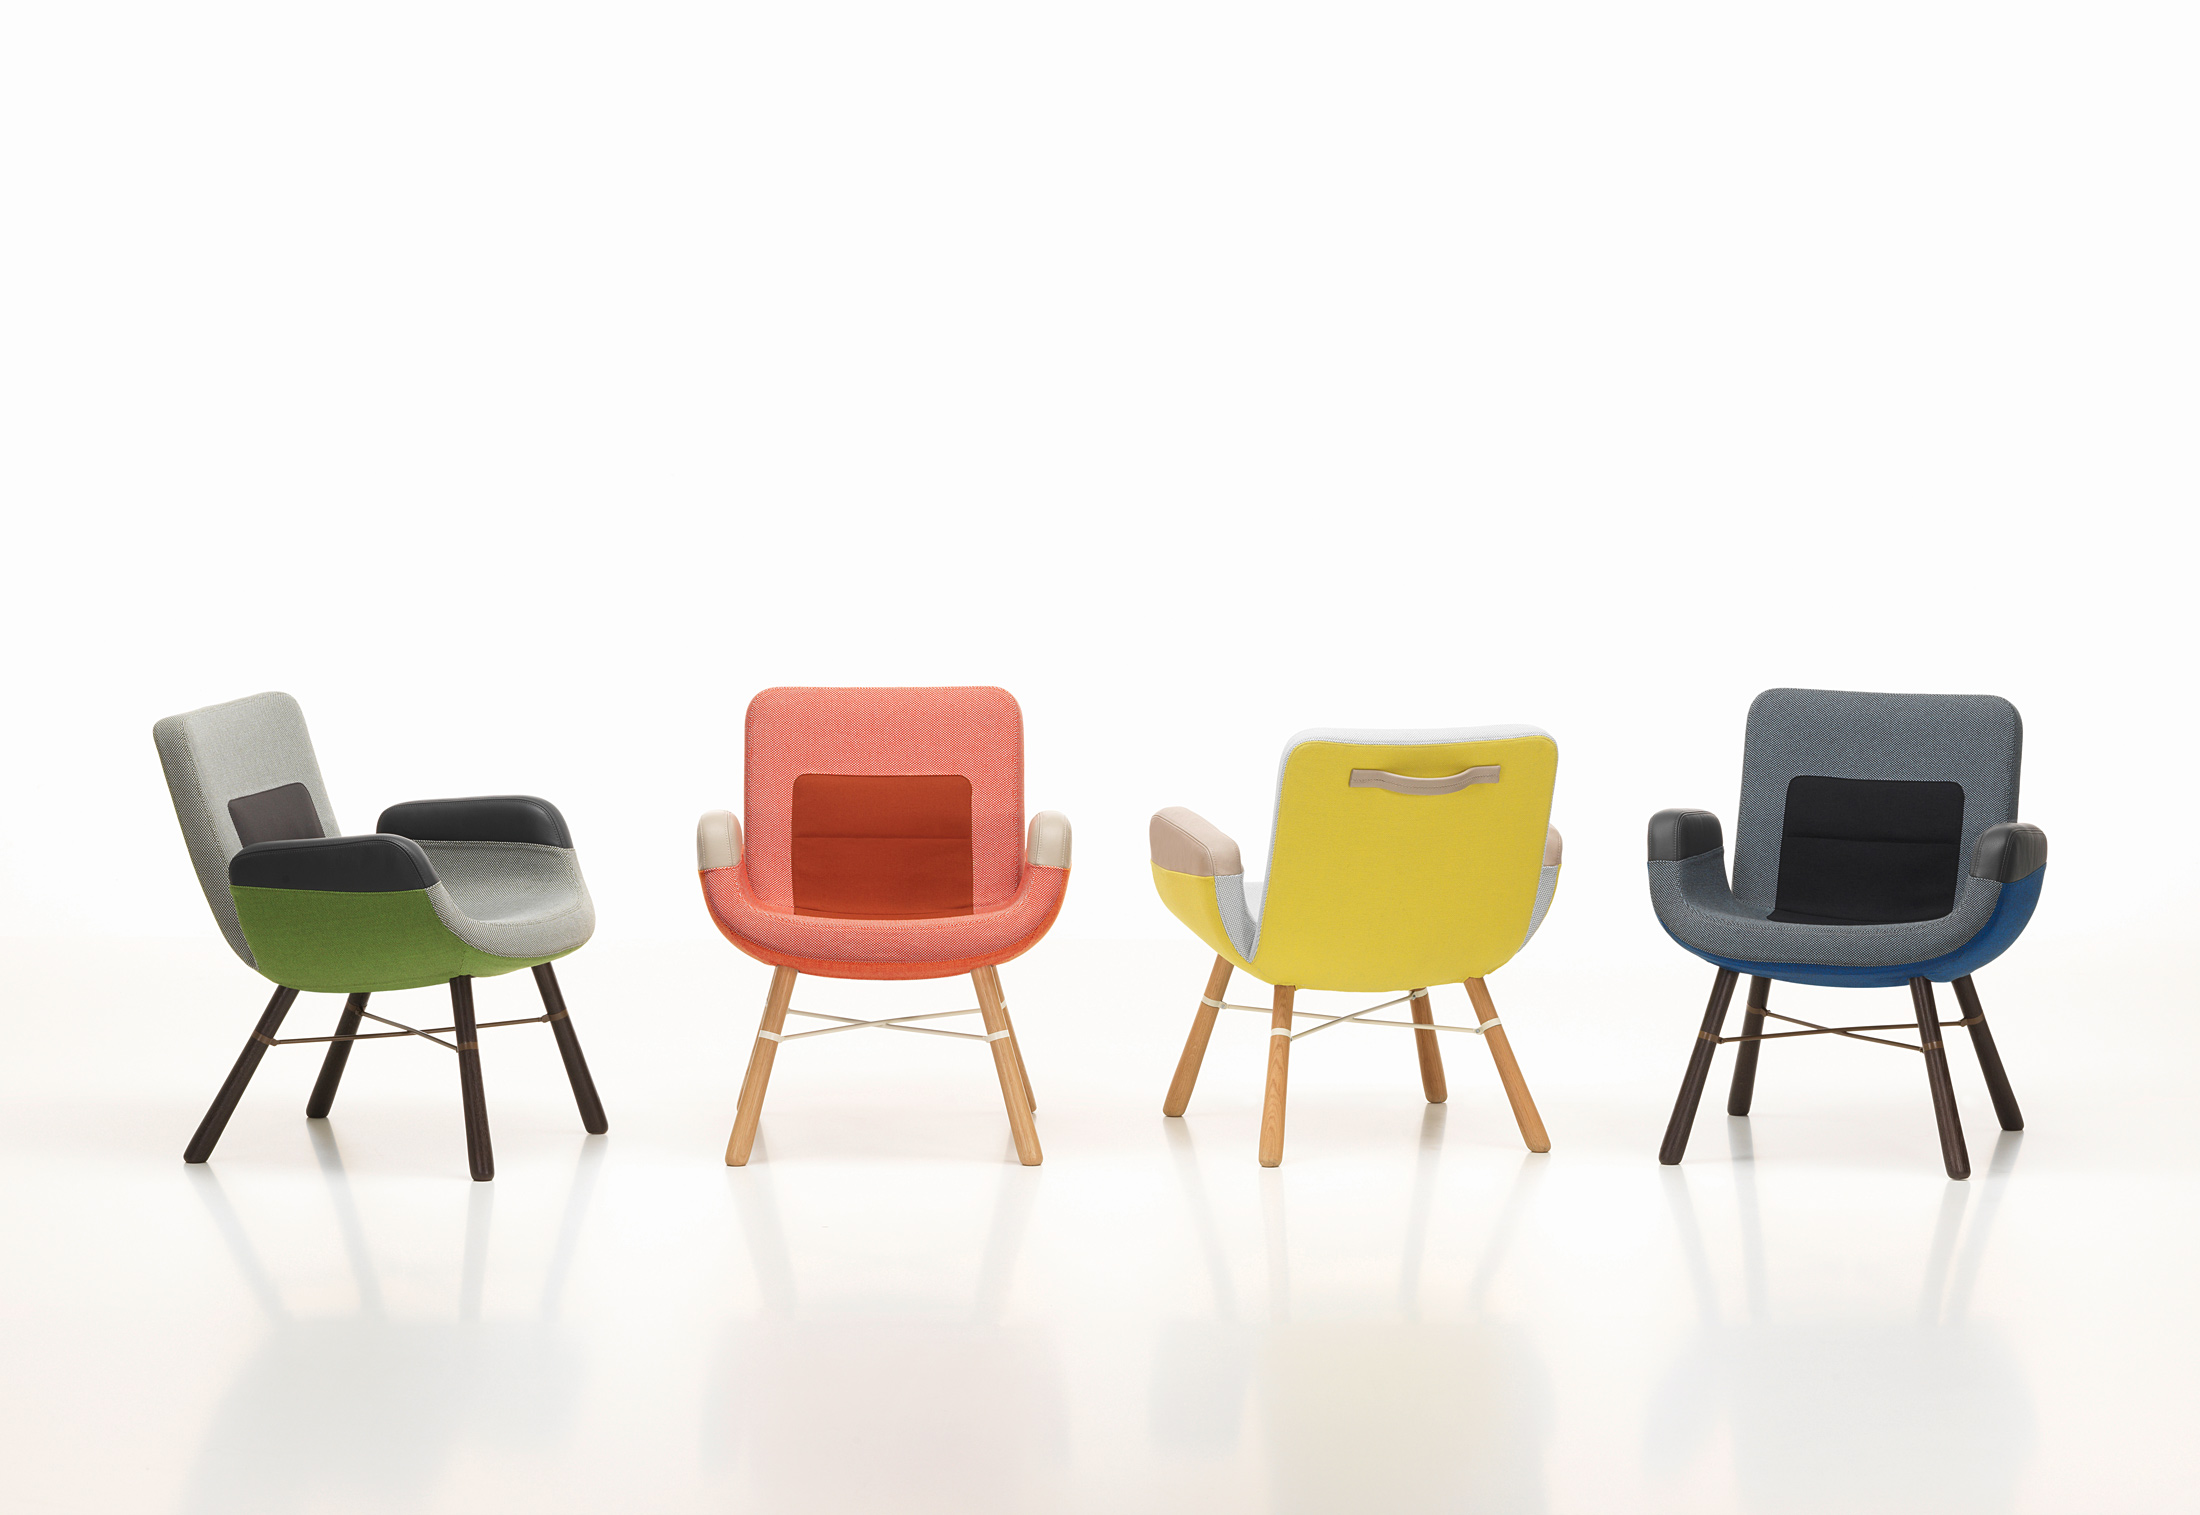 East River Chair By Hella Jongerius For Vitra Sohomod Blog